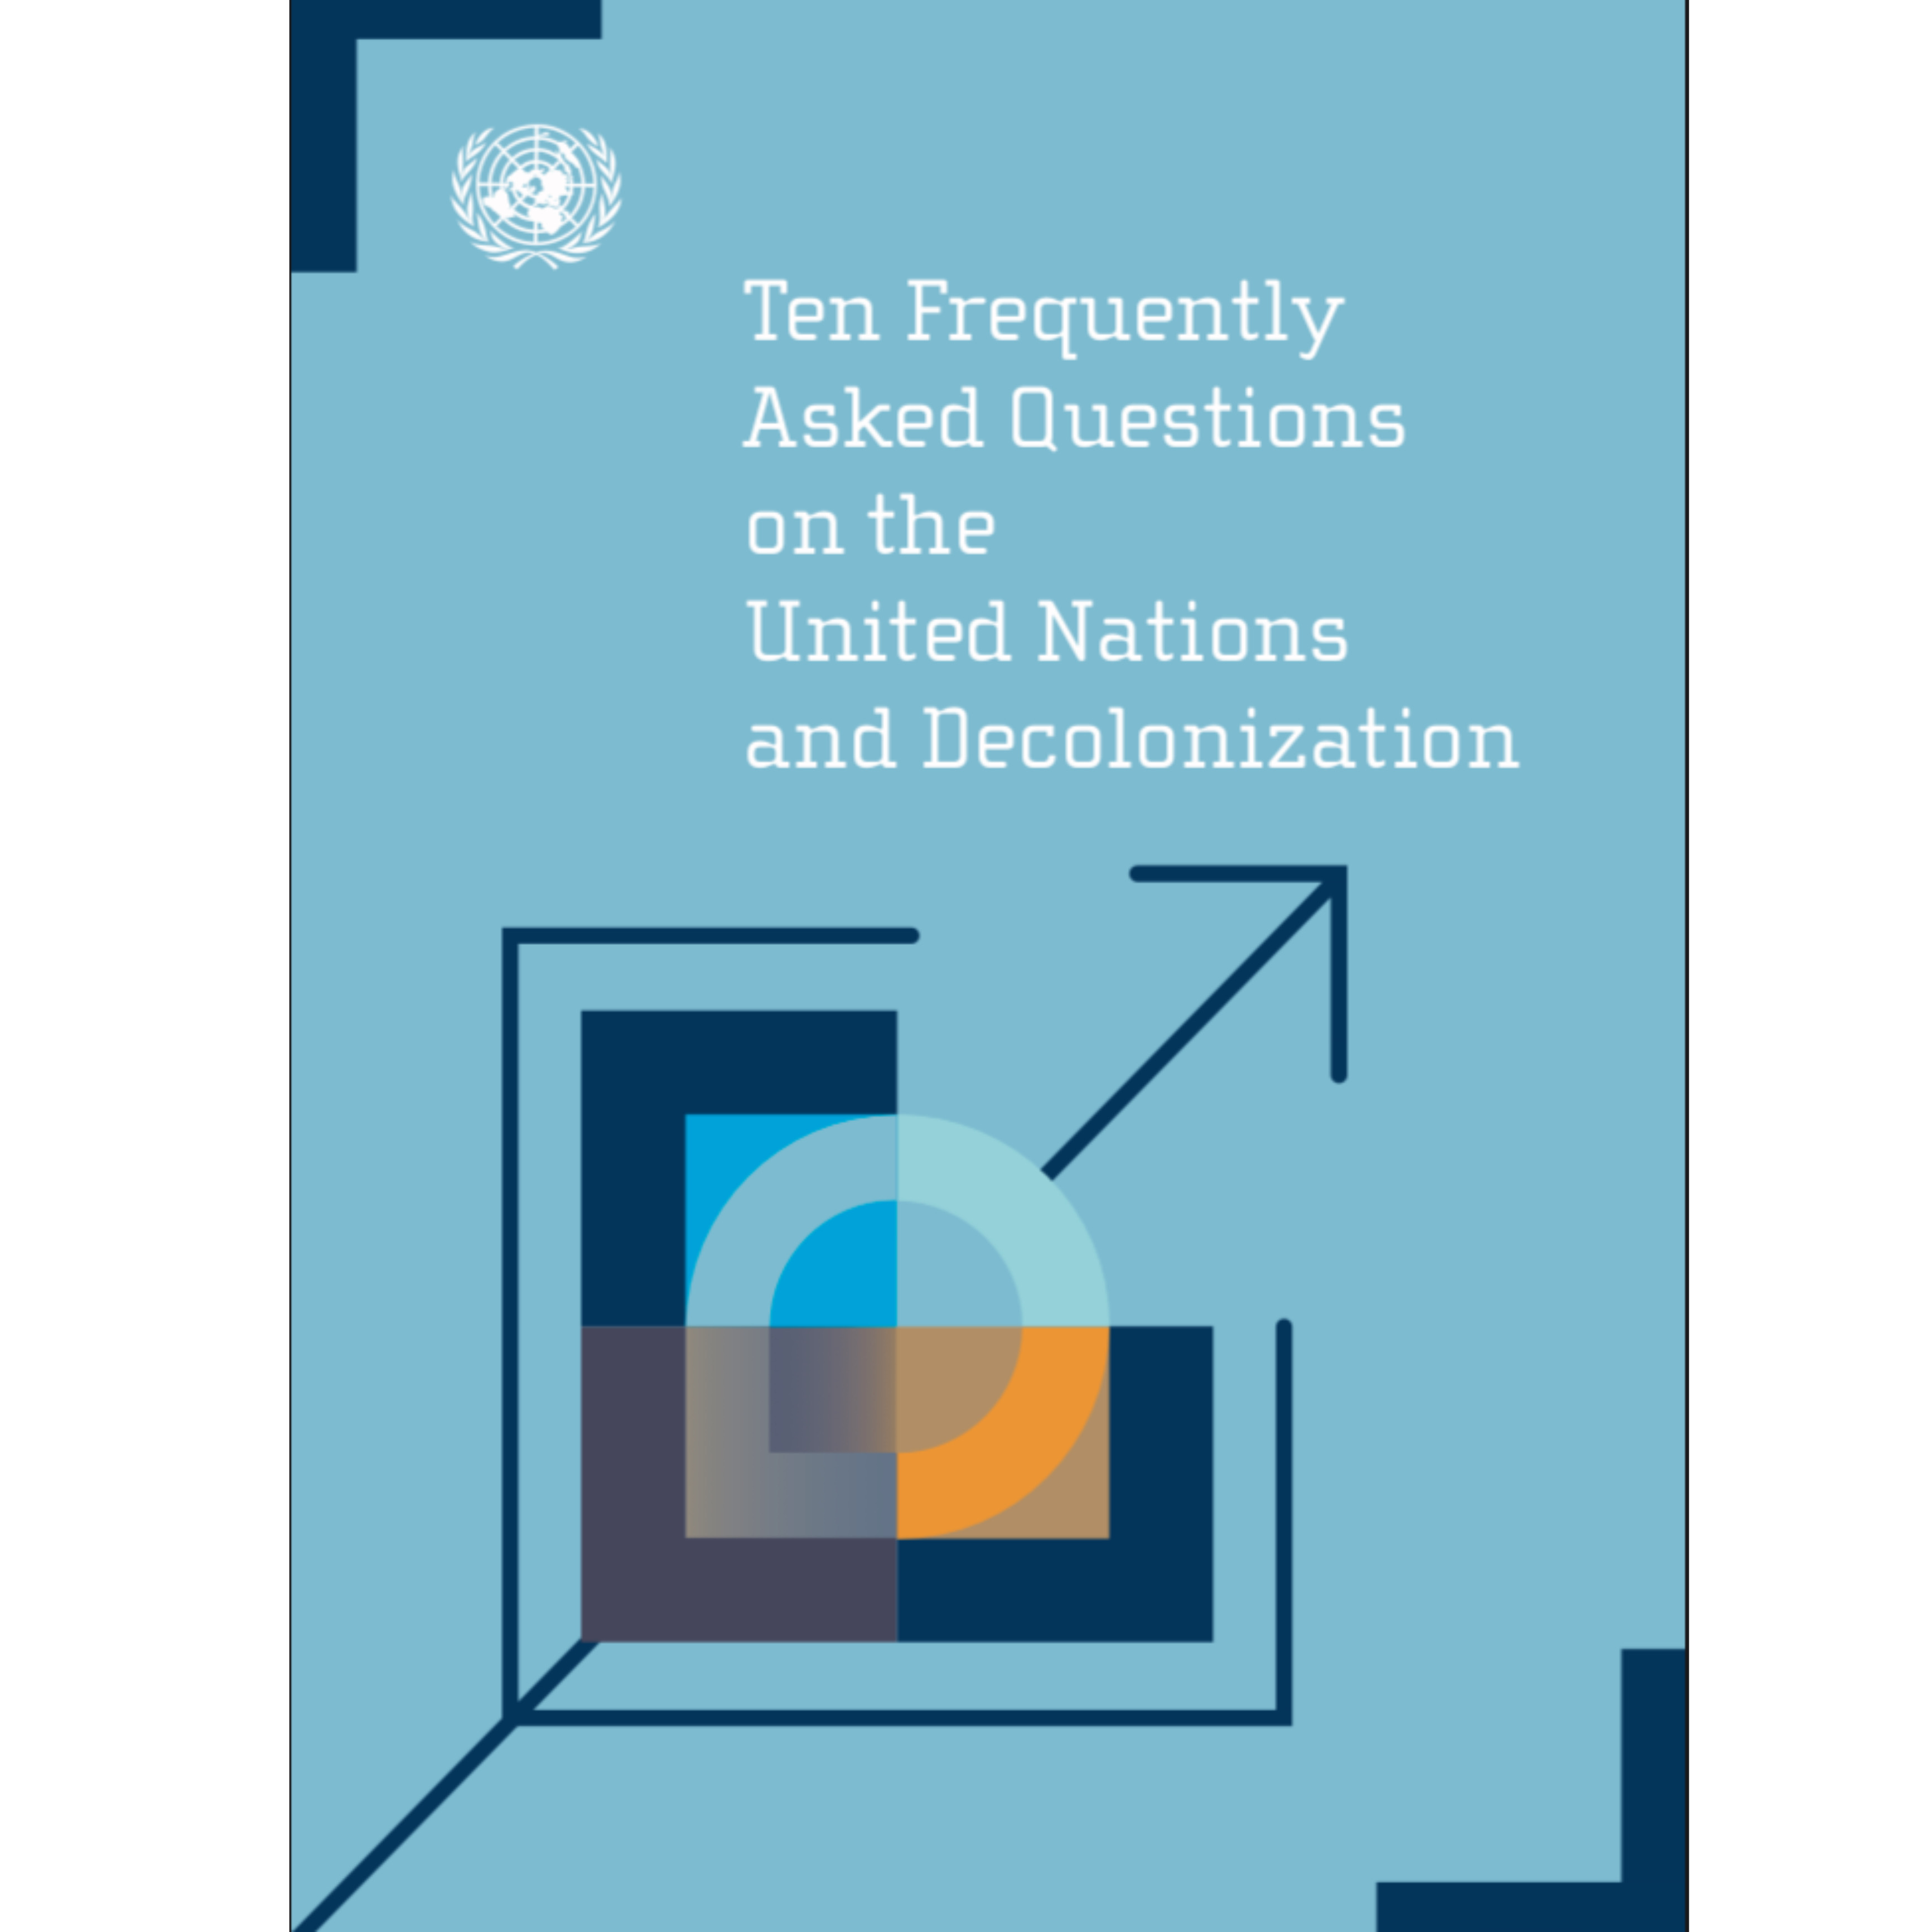 Ten Frequently Asked Questions on the United Nations and Decolonization